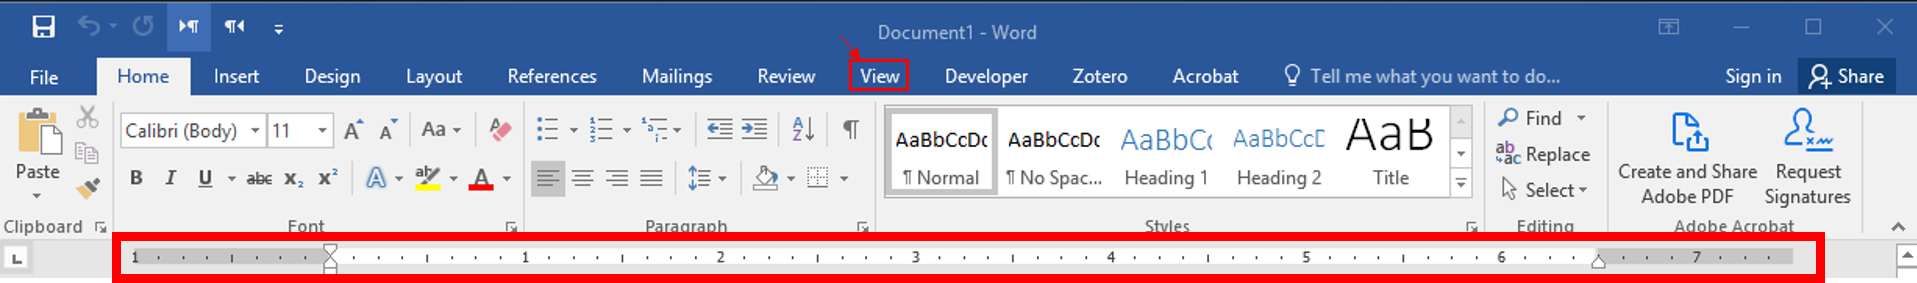 Rulers can be turned on and off under the view tab